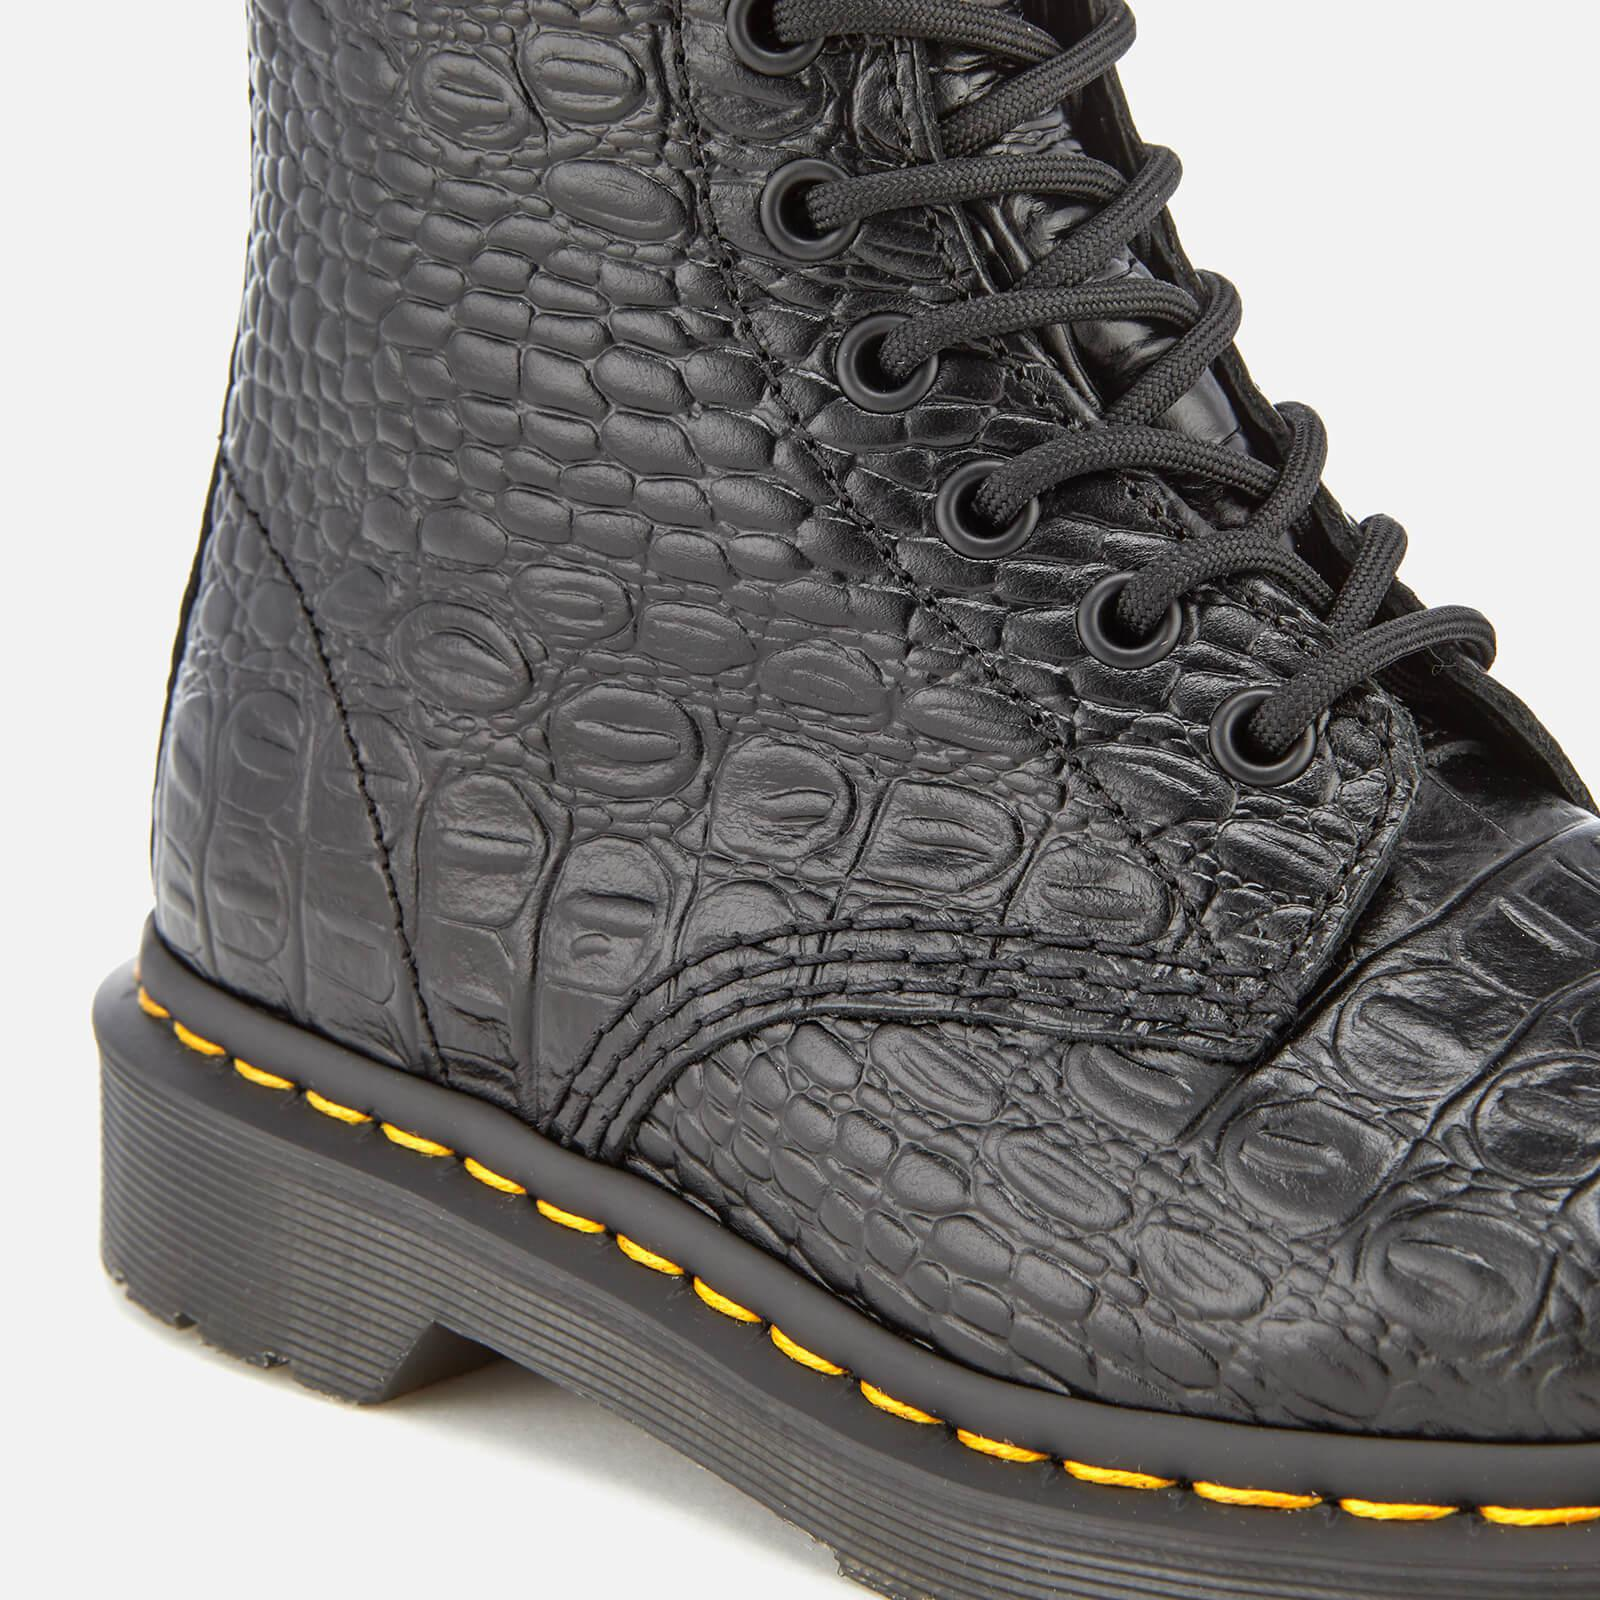 3592ed8a008933 Lyst - Dr. Martens Pascal Croc Leather 8-eye Lace Up Boots in Black